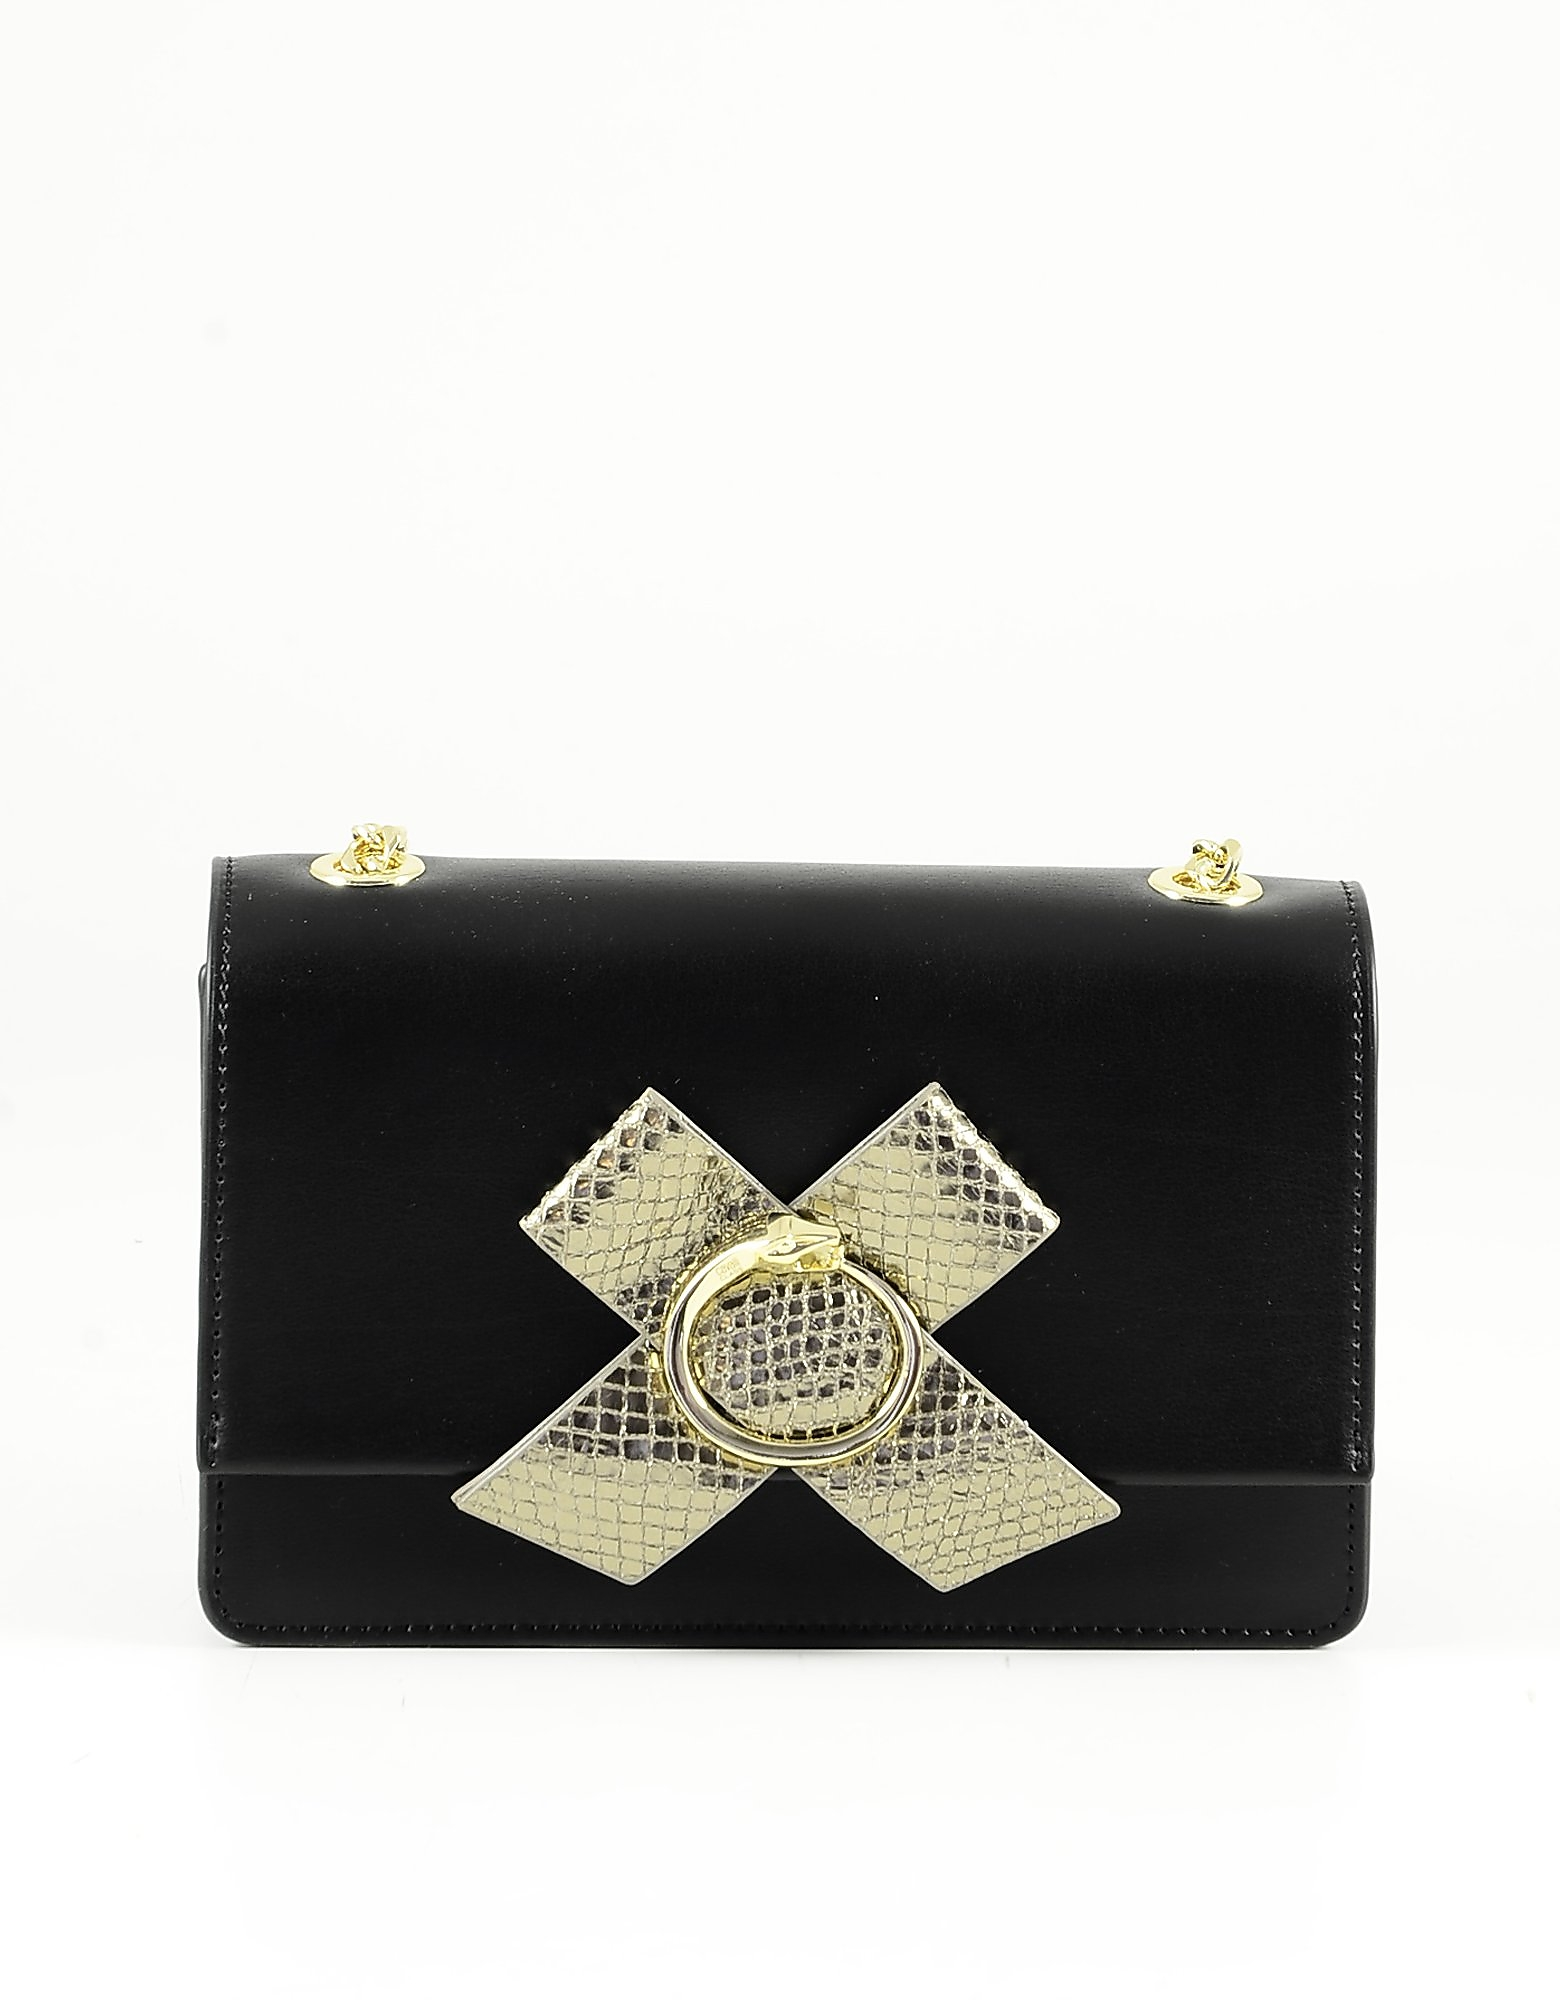 Class Roberto Cavalli Black Leather And Pvc Bag W/golden Bow